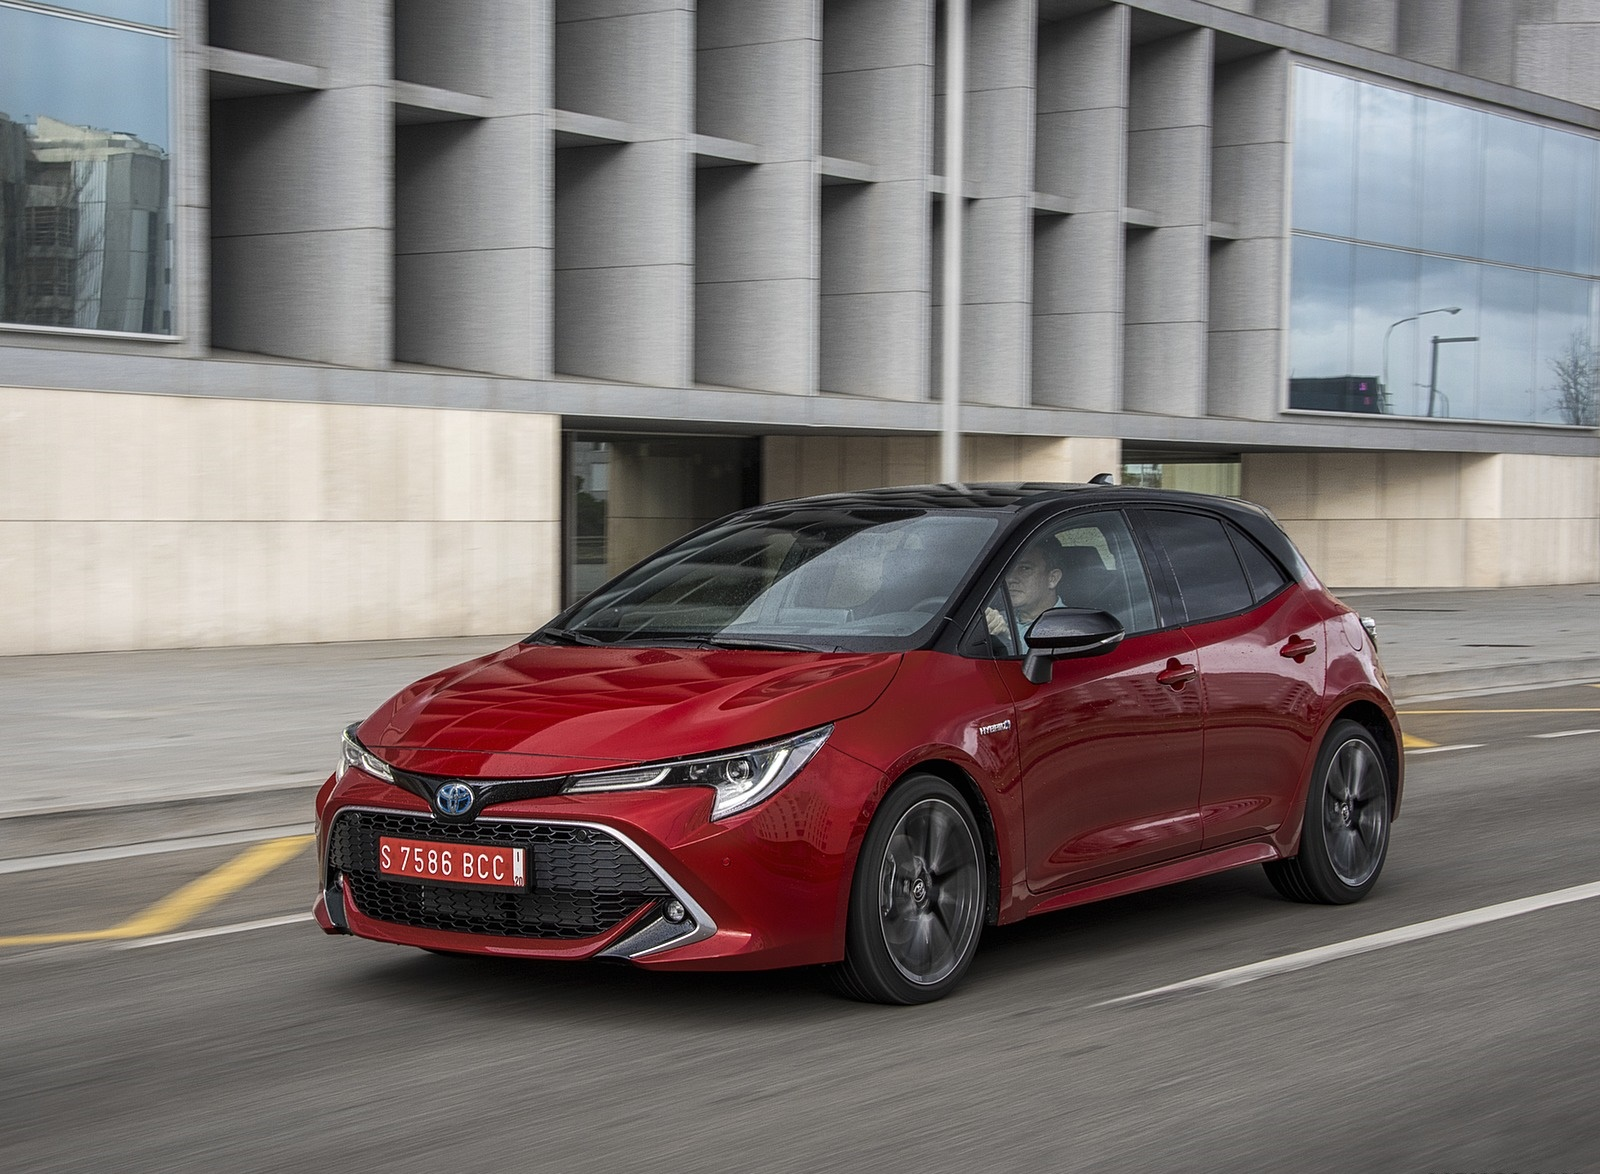 2019 Toyota Corolla Hatchback Hybrid 2.0L Red bitone (EU-Spec) Front Three-Quarter Wallpapers #18 of 81